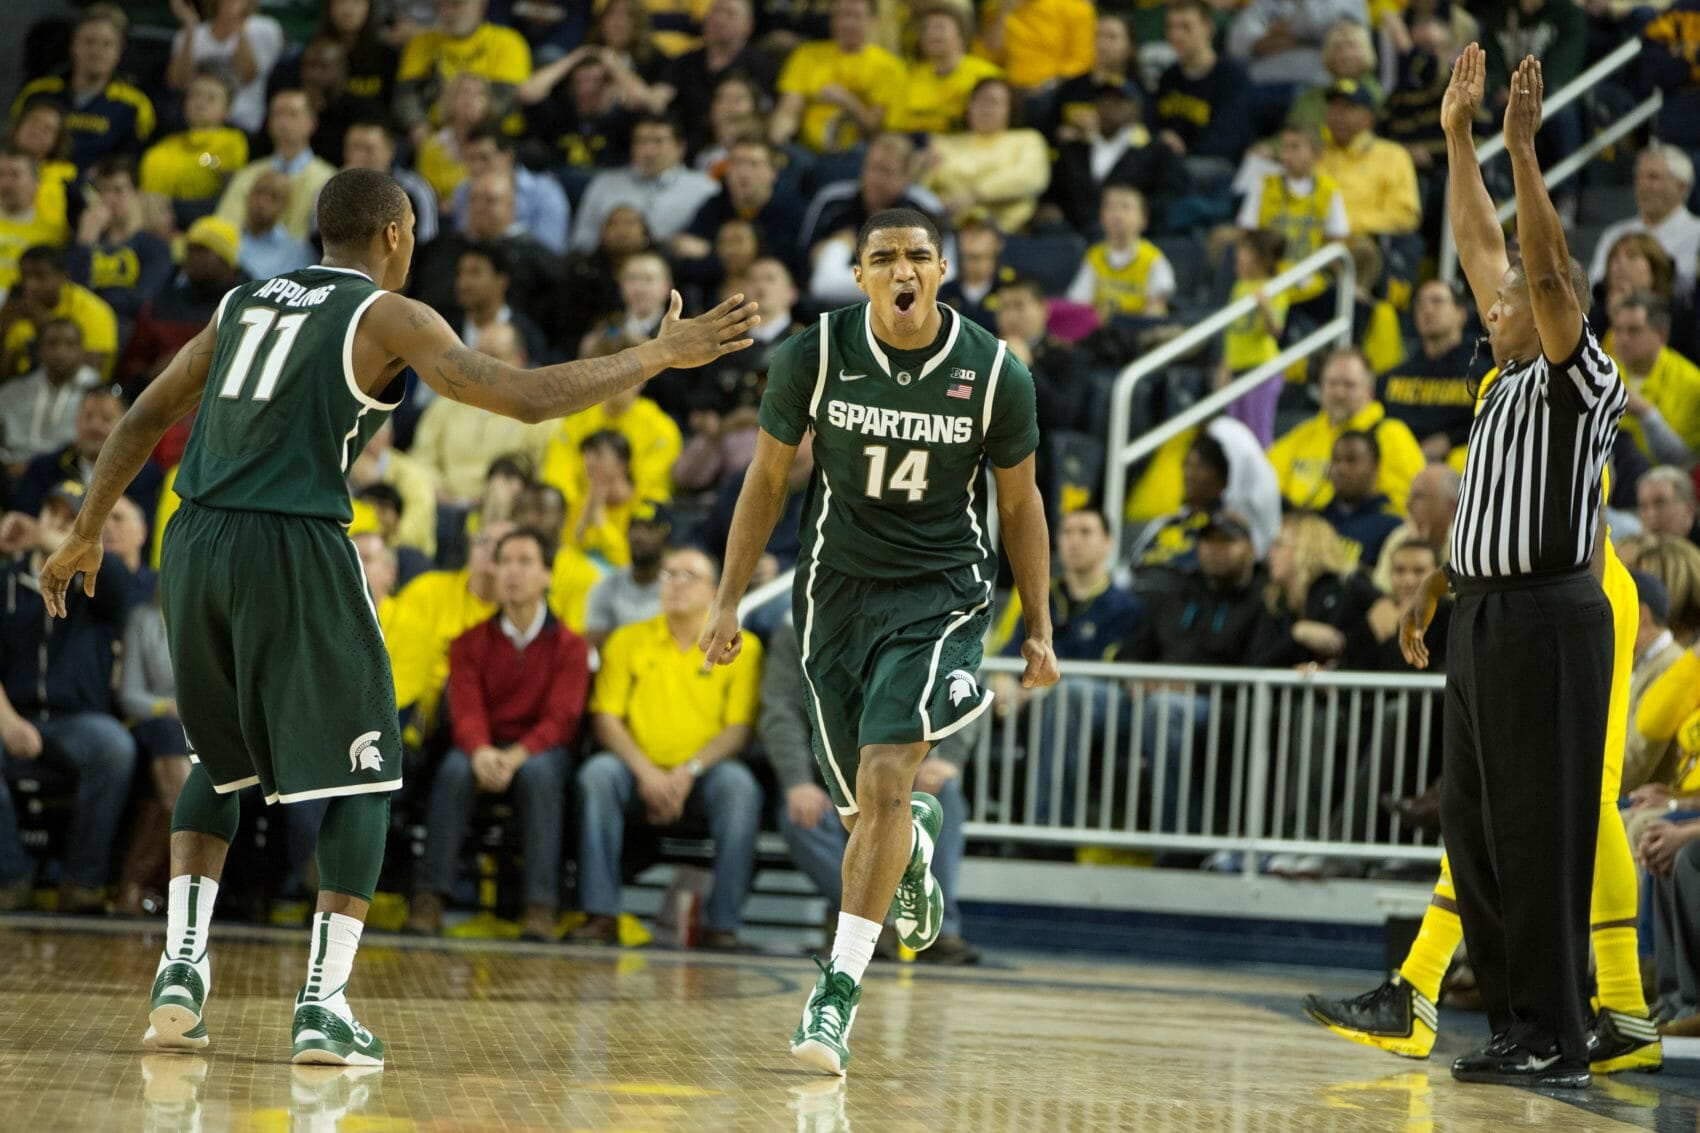 Michigan 58, Michigan State 57-25